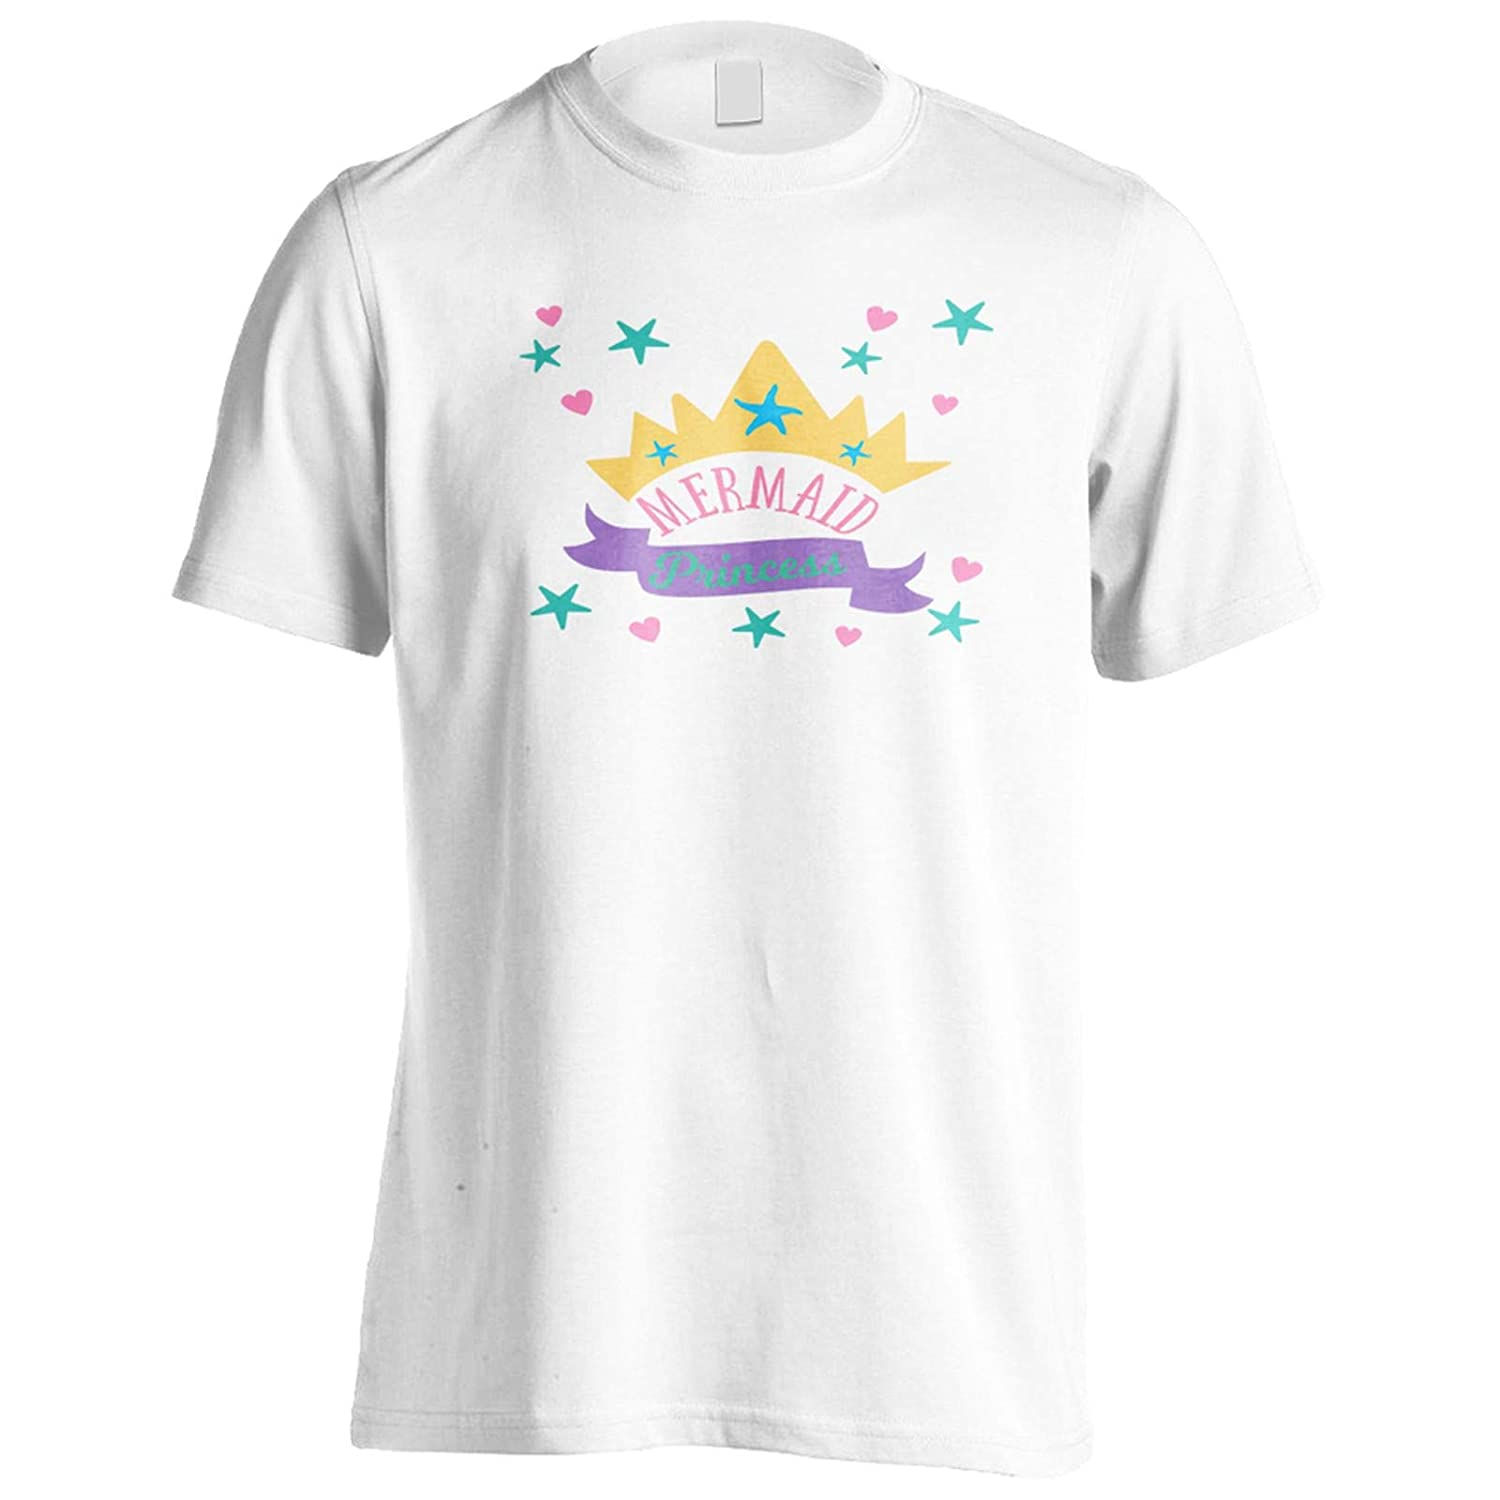 Mermaid Princess Mens T-Shirt Tee gg386m